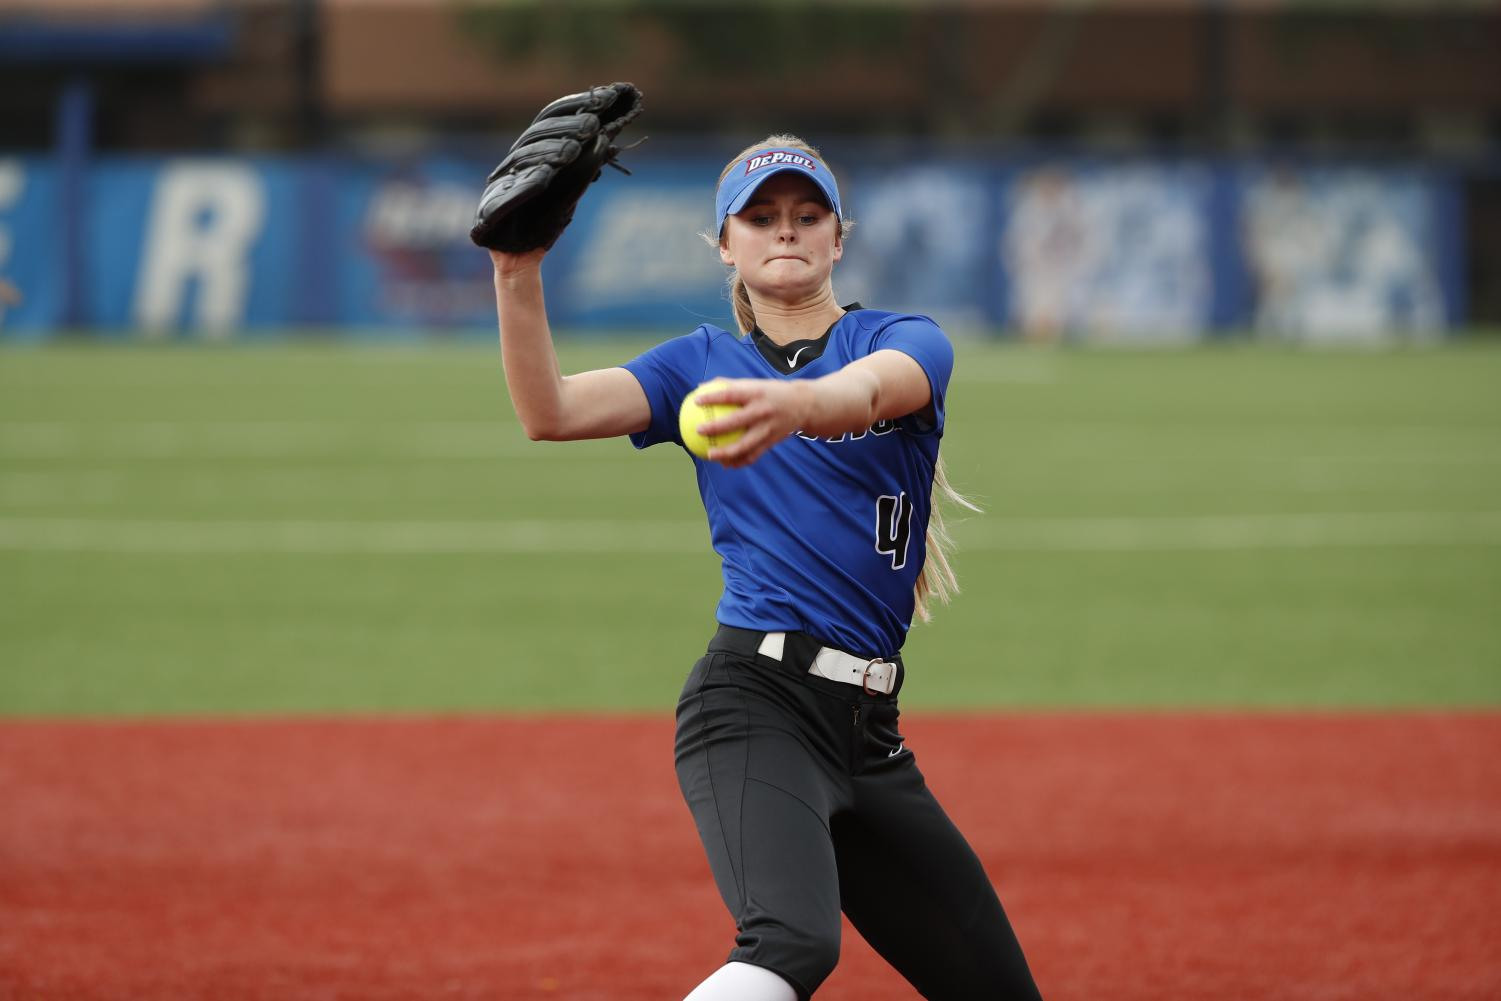 DePaul's freshman pitcher Pat Moore delivers a pitch at Cacciatore Stadium early this season. Through 93 innings pitched, the Oregon native leads the team with 121 strikeouts. (Steve Woltmann | DePaul Athletics)